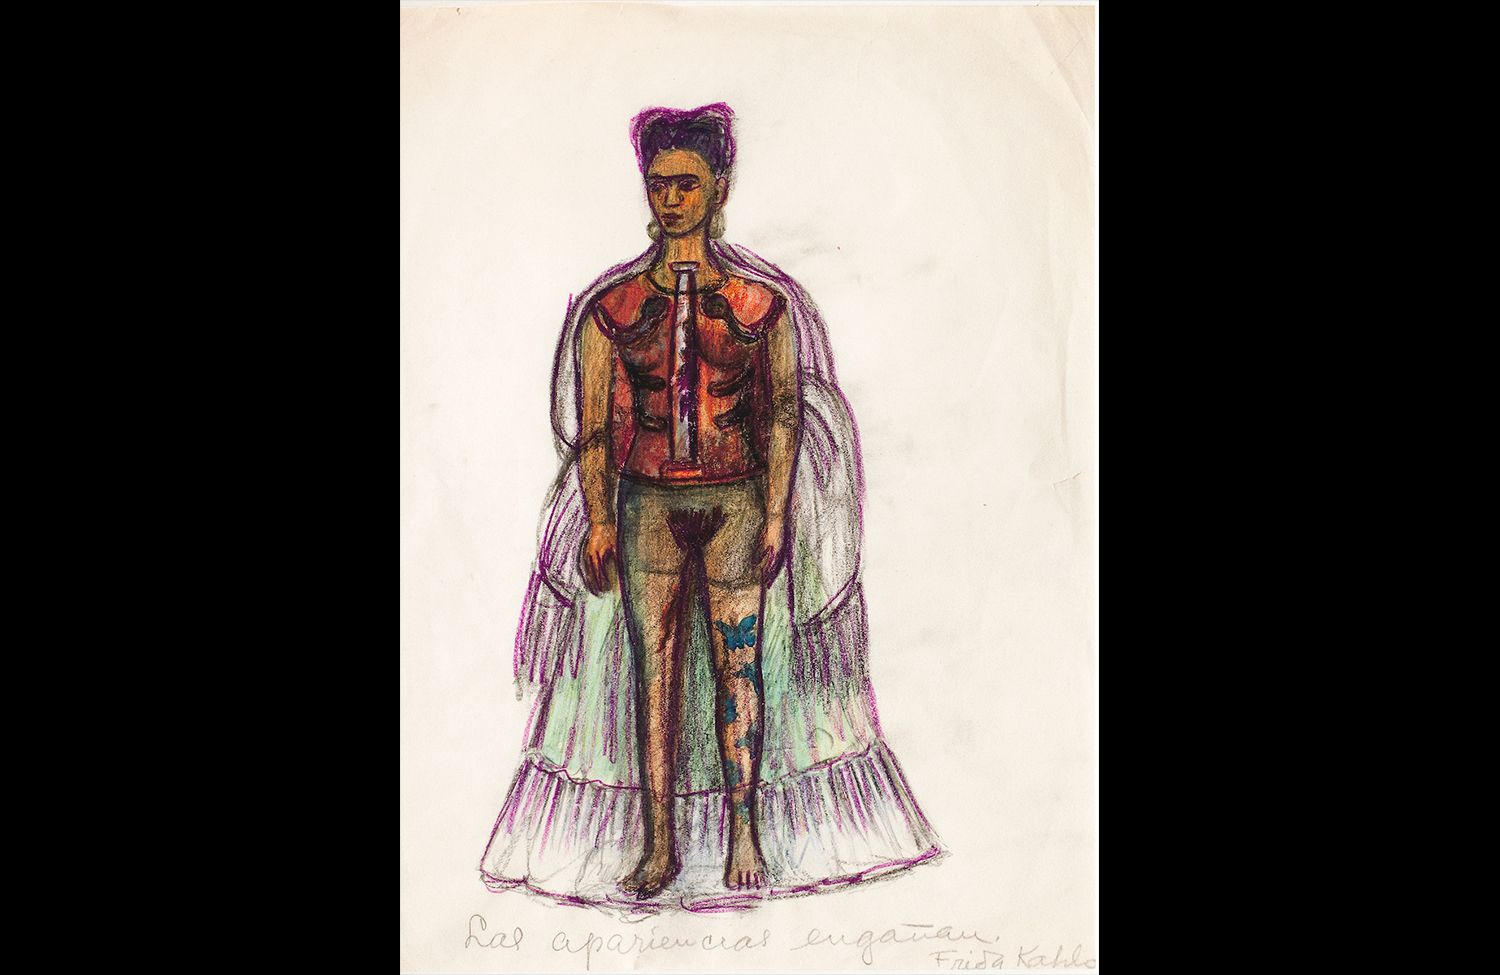 Frida Kahlo: Appearances Can Be Deceiving 9